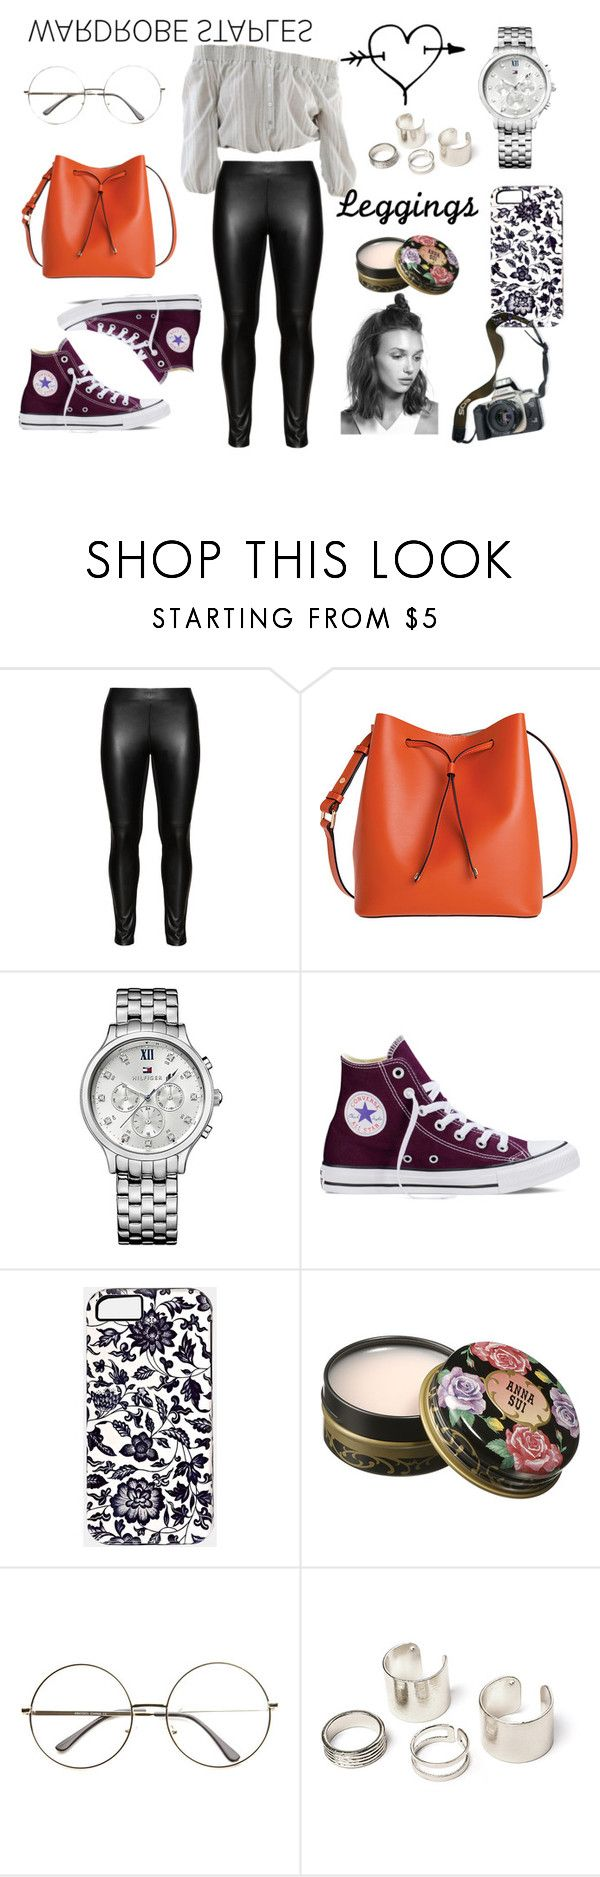 """cool&lazy"" by daniela-123 ❤ liked on Polyvore featuring Studio, Lodis, Tommy Hilfiger, Eos, Converse, Anna Sui, Leggings and WardrobeStaples"